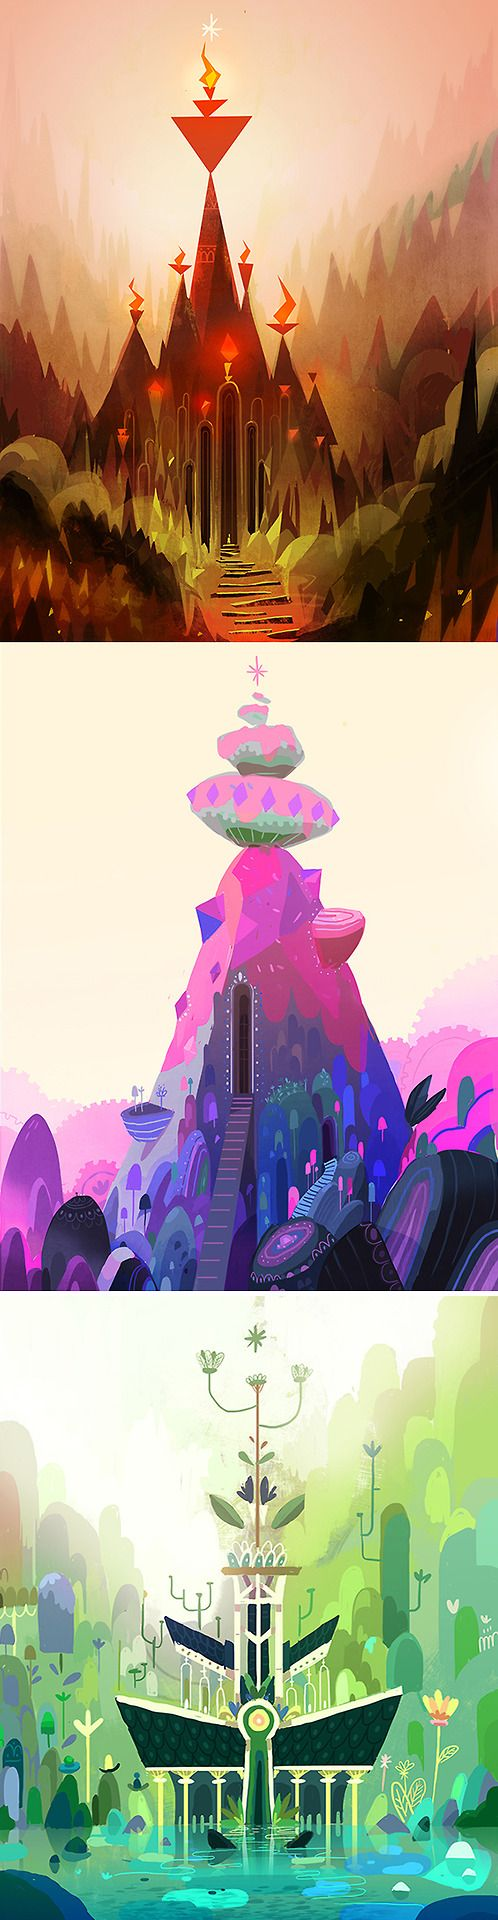 Beautiful illustrations. The mix of solid shapes and texture is gorgeous. Clément De Ruyter